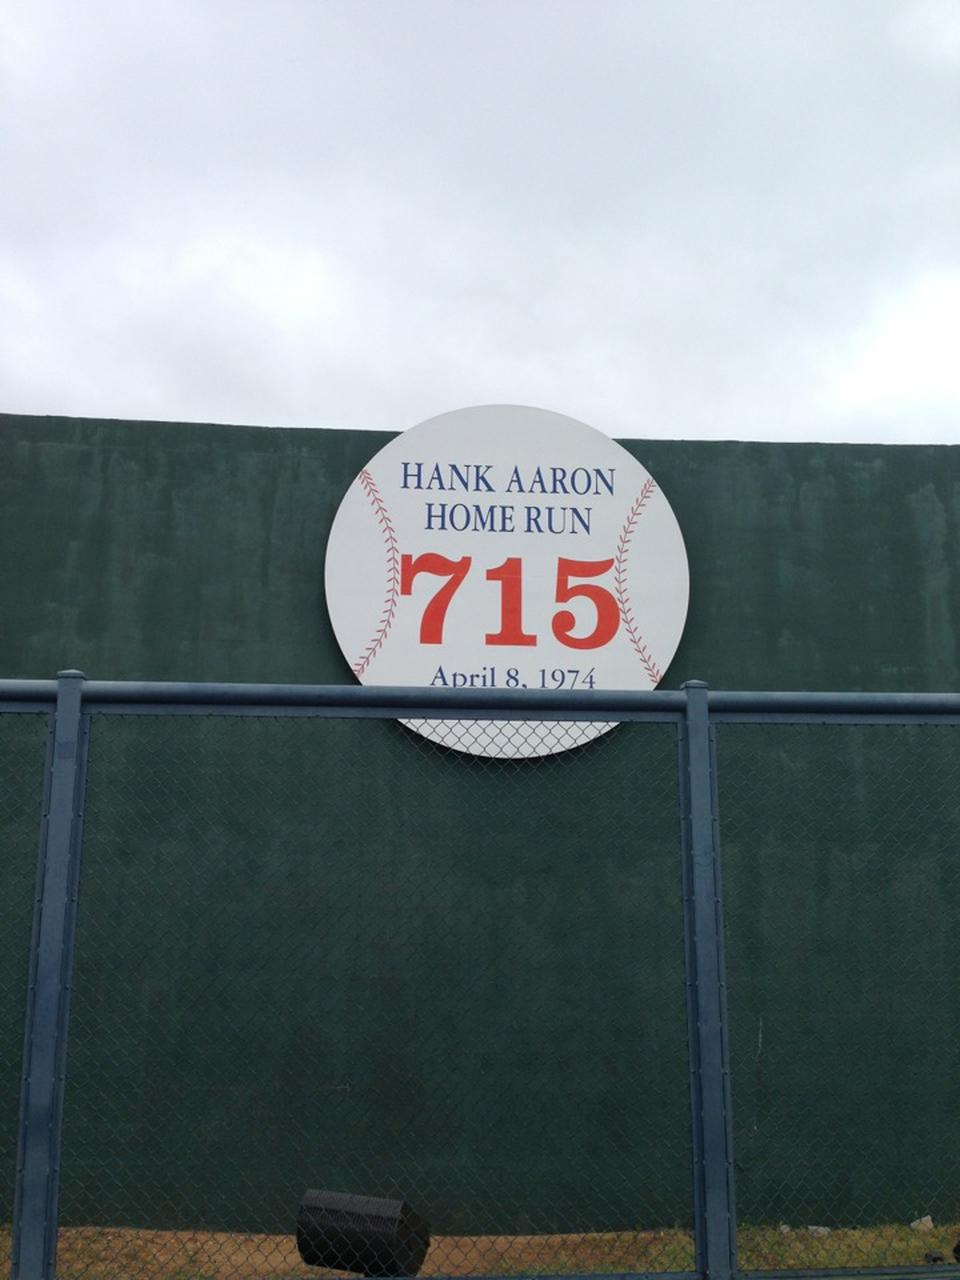 The 715 Home Run Monument